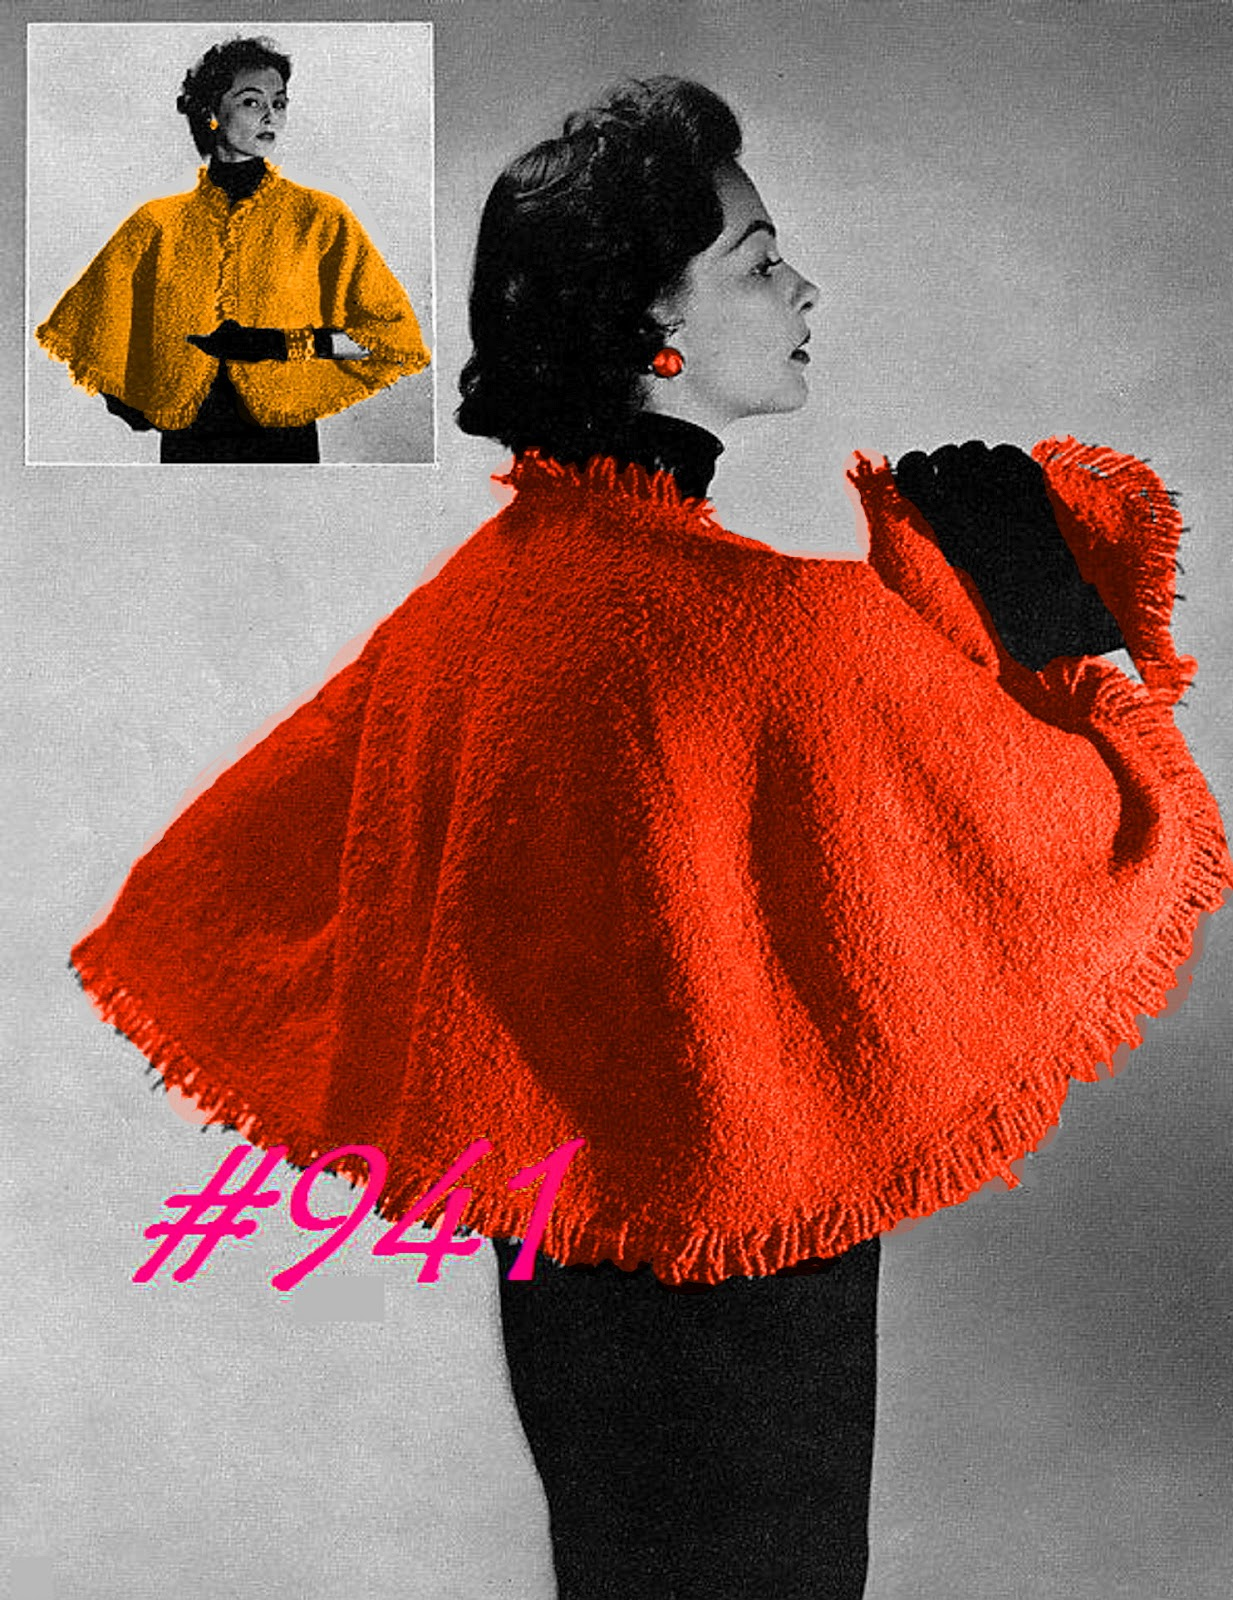 Knitting Patterns For Capes : Miss Julias Patterns: Cozy Capes to Knit - Crochet & Free Patterns